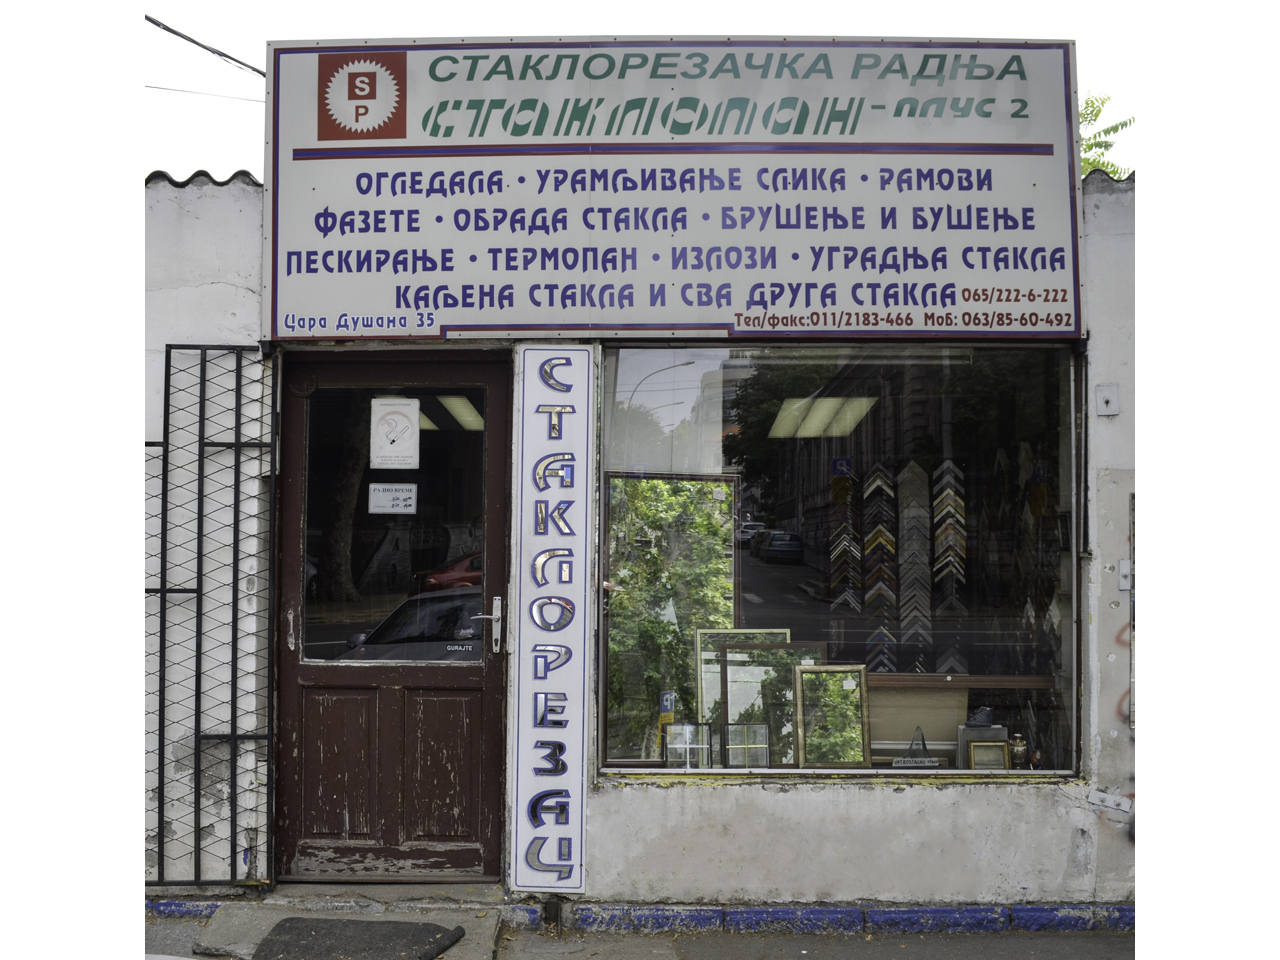 2 STAKLOPAN PLUS Glass, glass-cutters Beograd